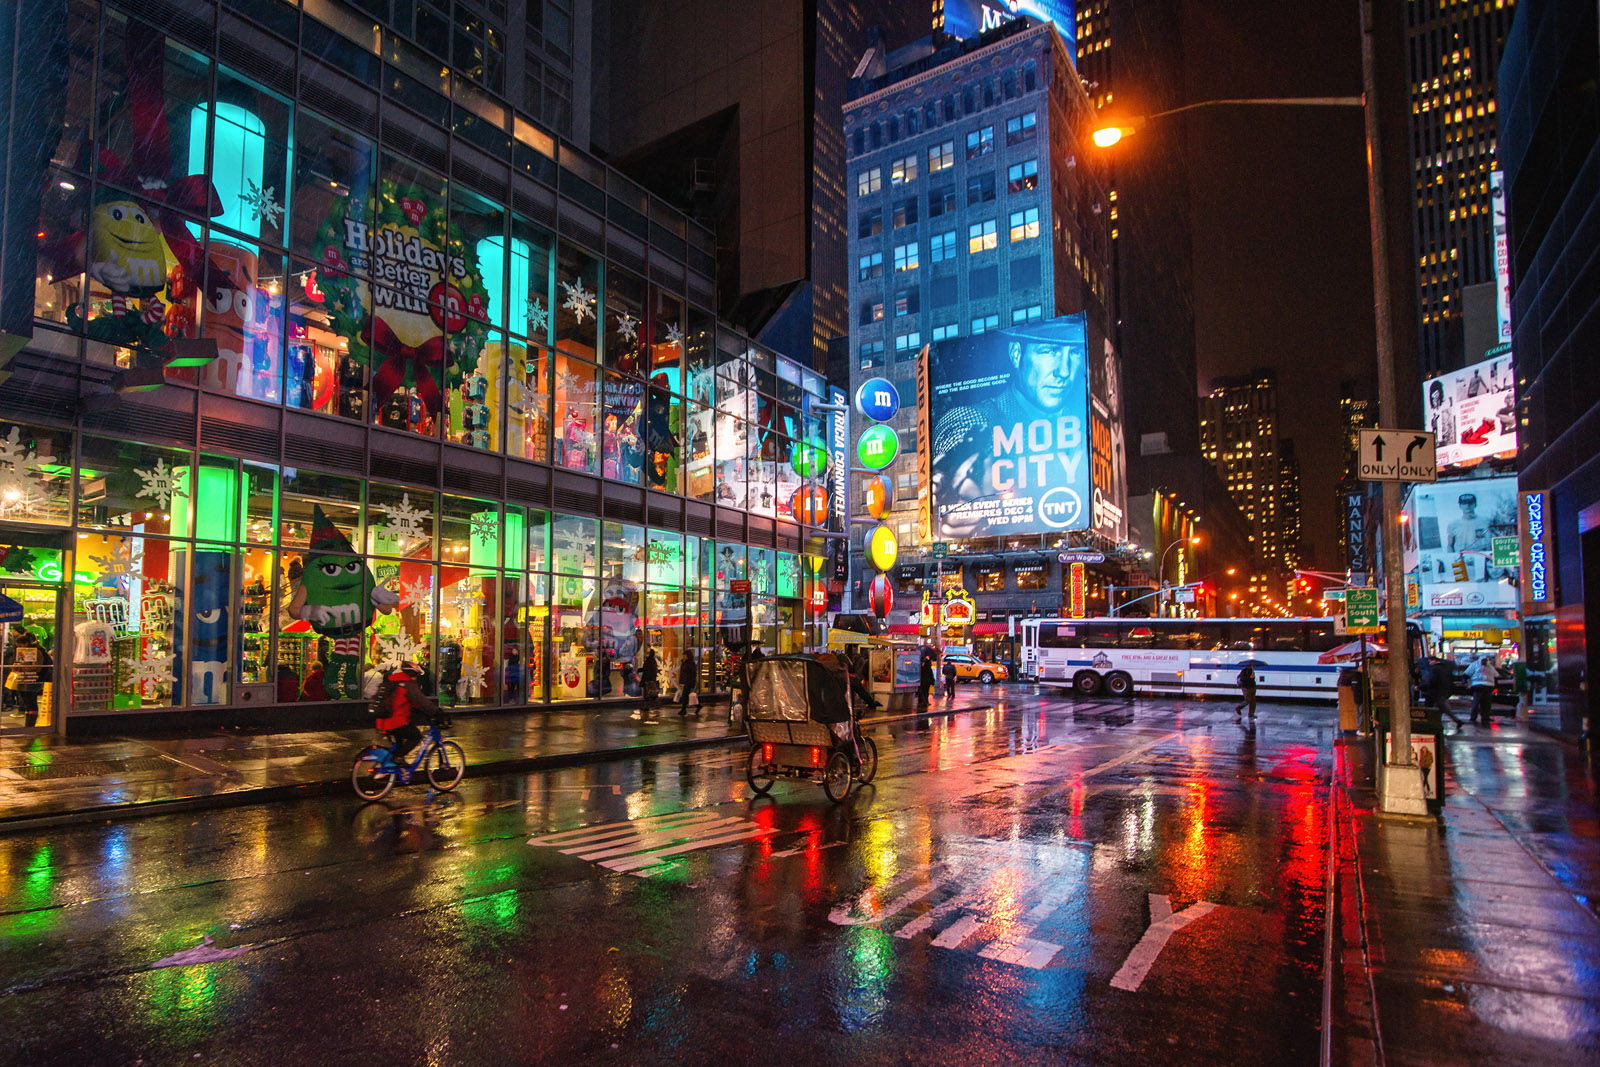 Rainy Fall Day Wallpaper Wallpaper Road Street New York City Nyc November